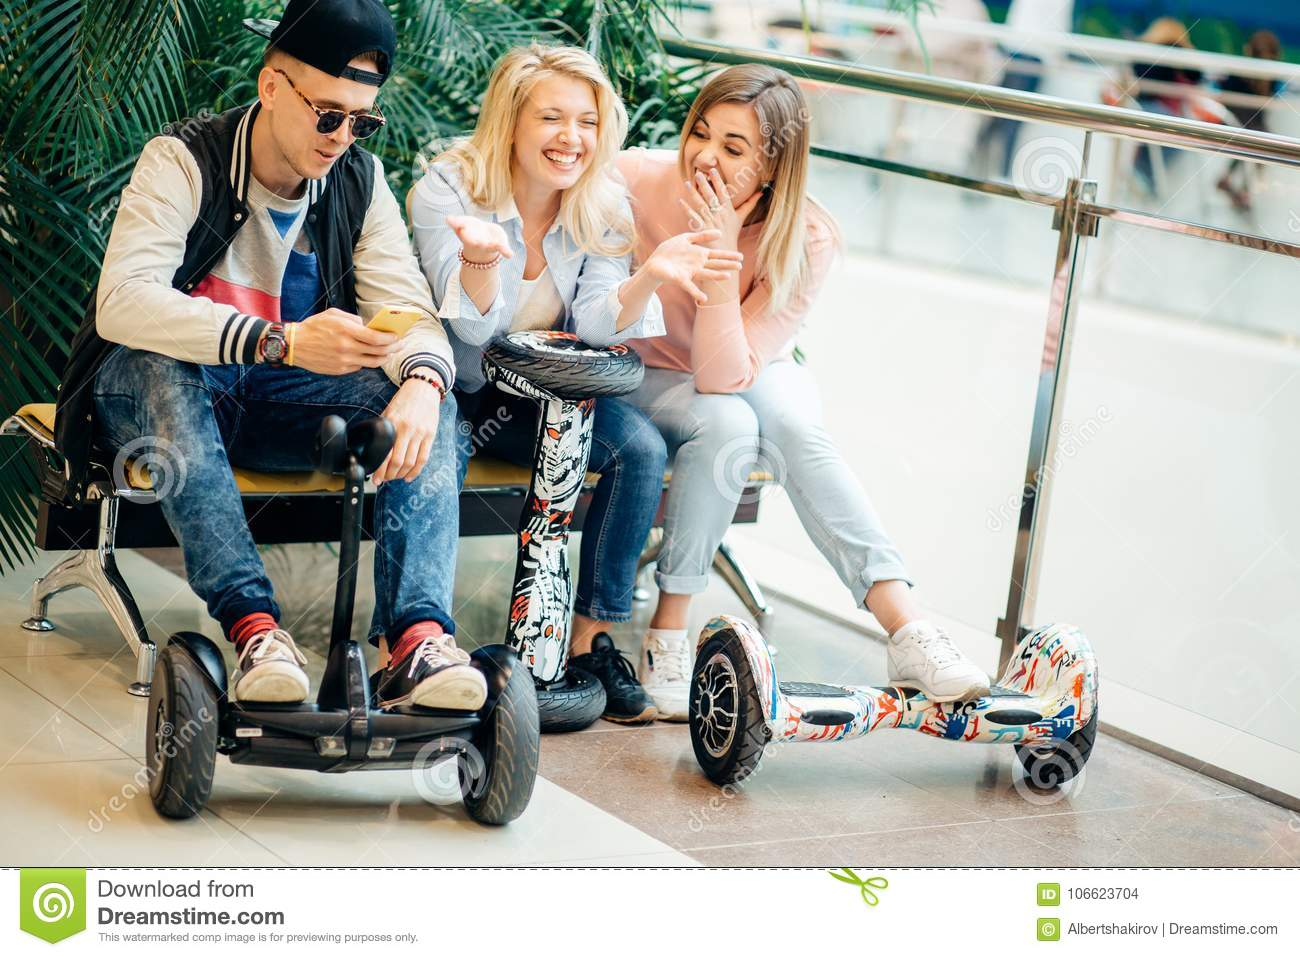 Group Of People On Electric Scooter Hoverboard Sitting At Bench And Using Phone Stock Photo Image Of Lifestyle Group 106623704